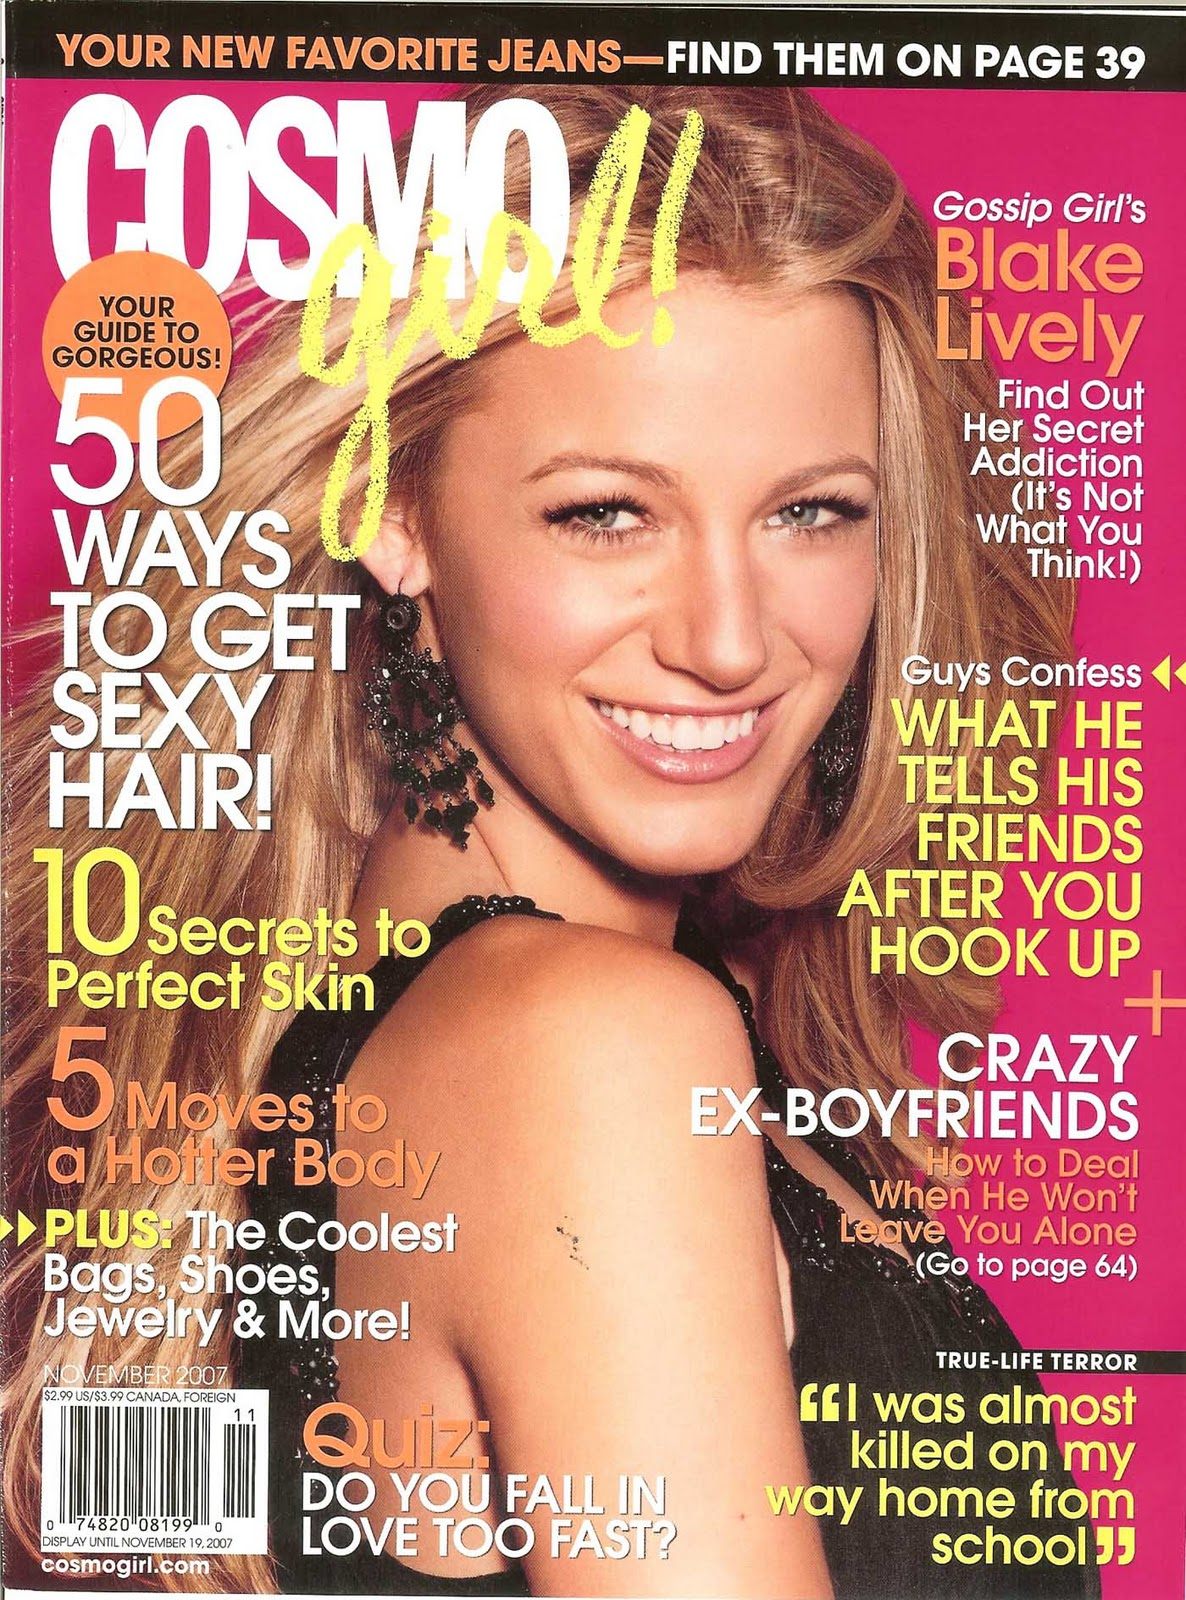 cosmo girl essay We tell our little girls they are beautiful and that they should feel that way, but we also tell them to not be too vain case in point: an essay that recently appeared in cosmopolitan in which a 20-year-old girl admitted to being so pretty that she feels people don't recognize her accomplishments the backlash has been swift and oh so m.